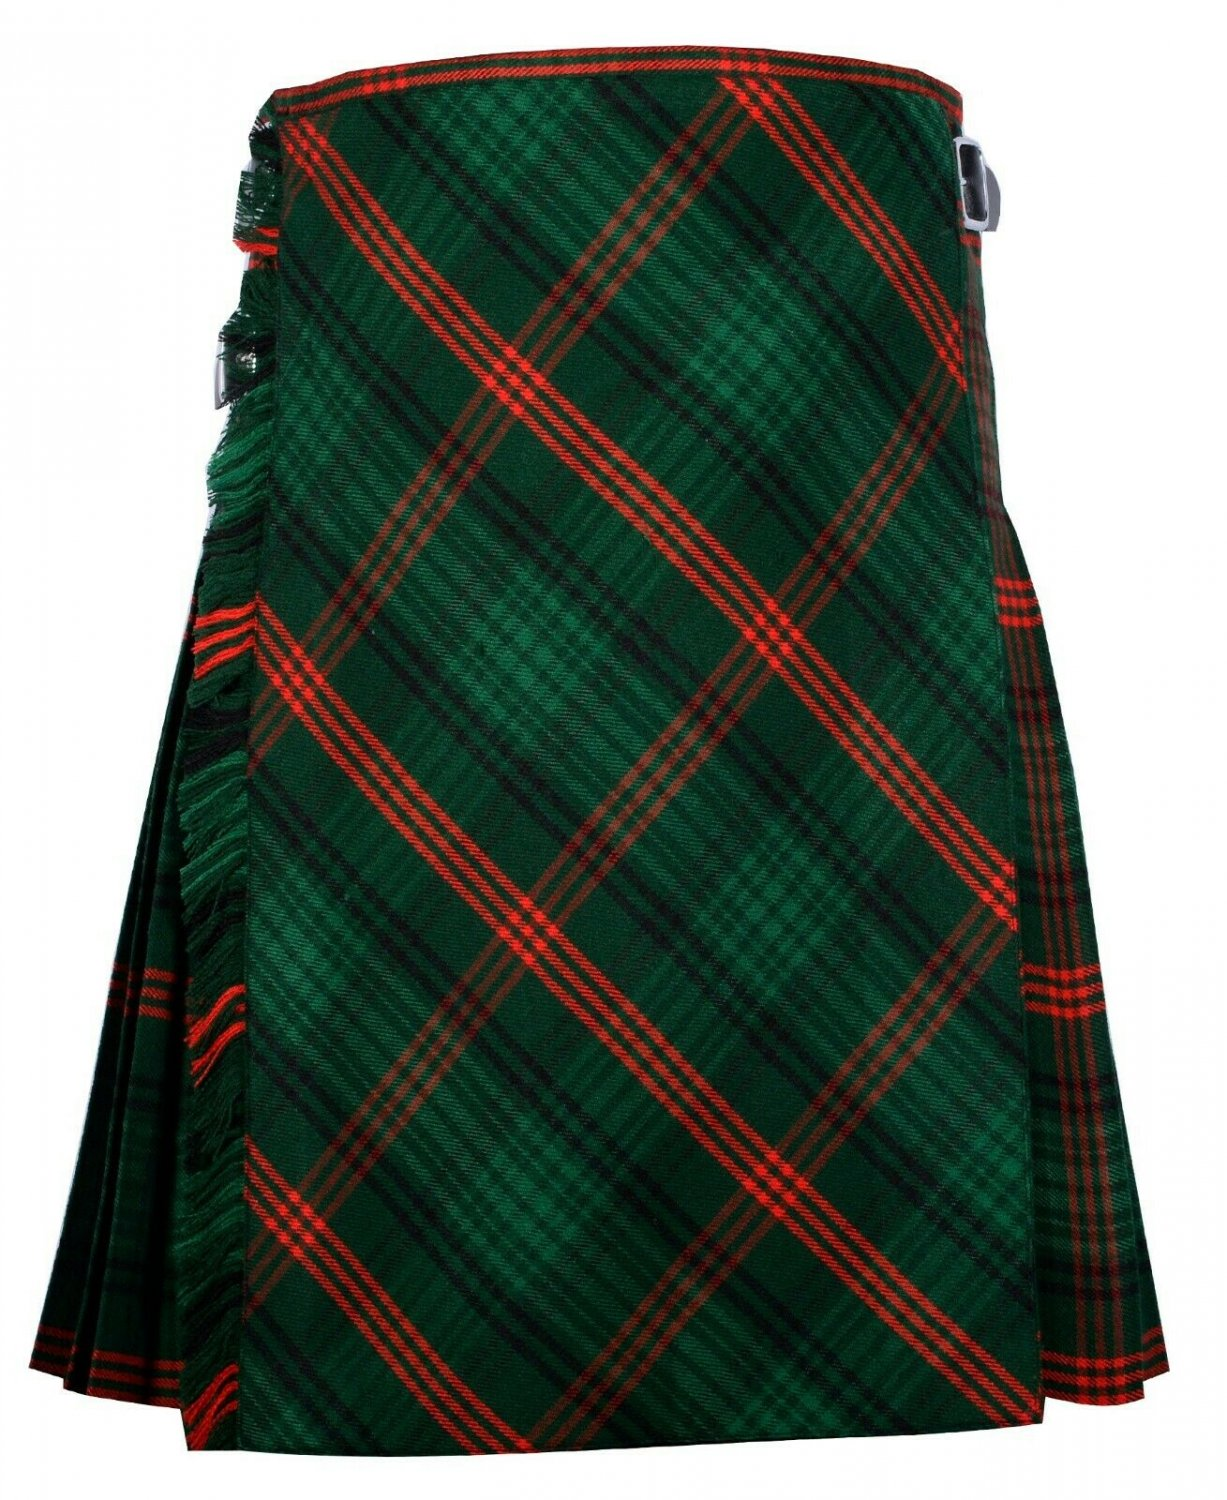 42 size Rose Hunting tartan Bias Apron Traditional 5 Yard Scottish Kilt for Men